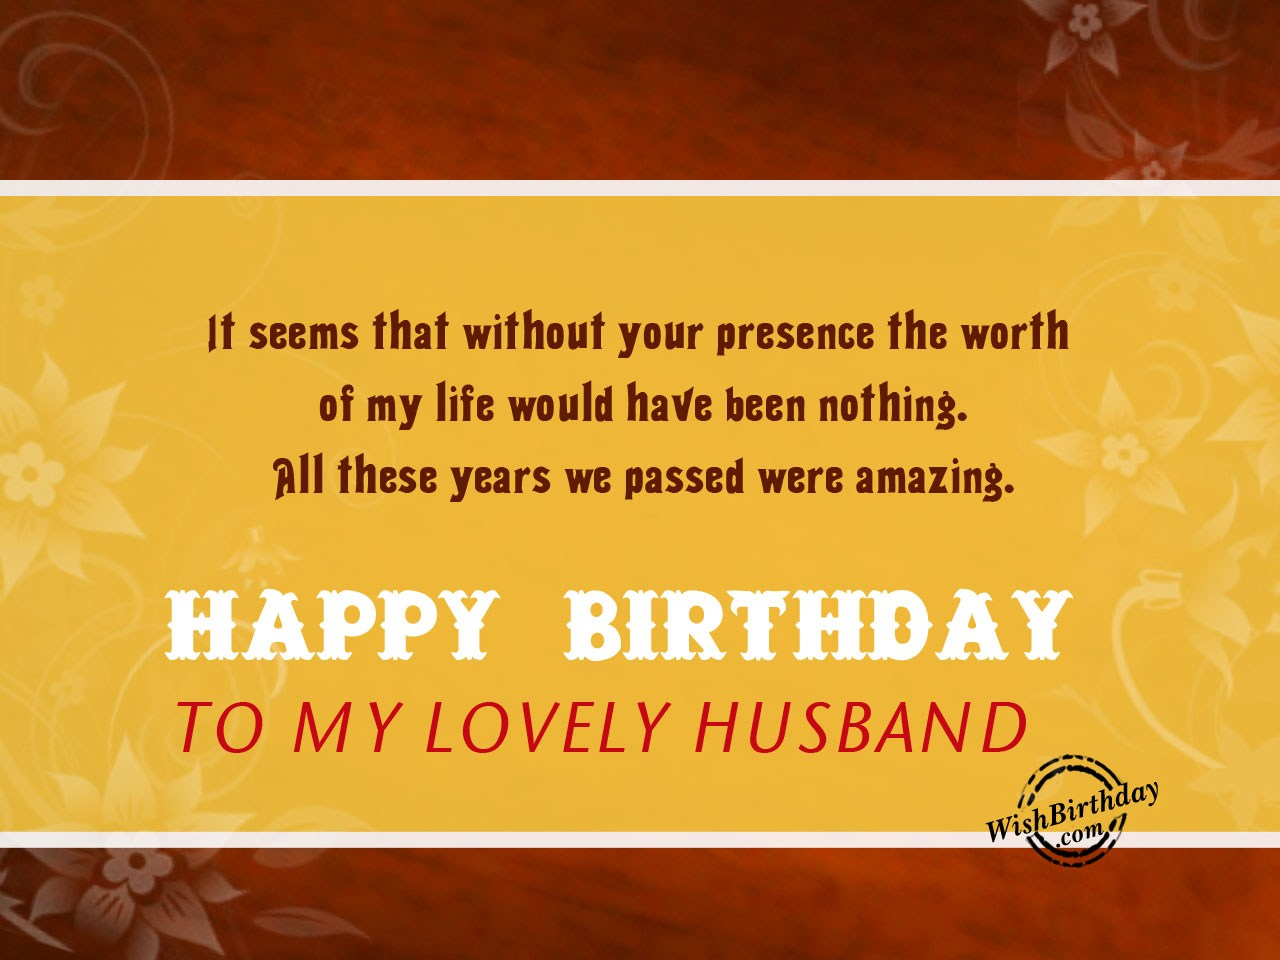 birthday message for my lovely husband ; It-seems-that-without-your-presence